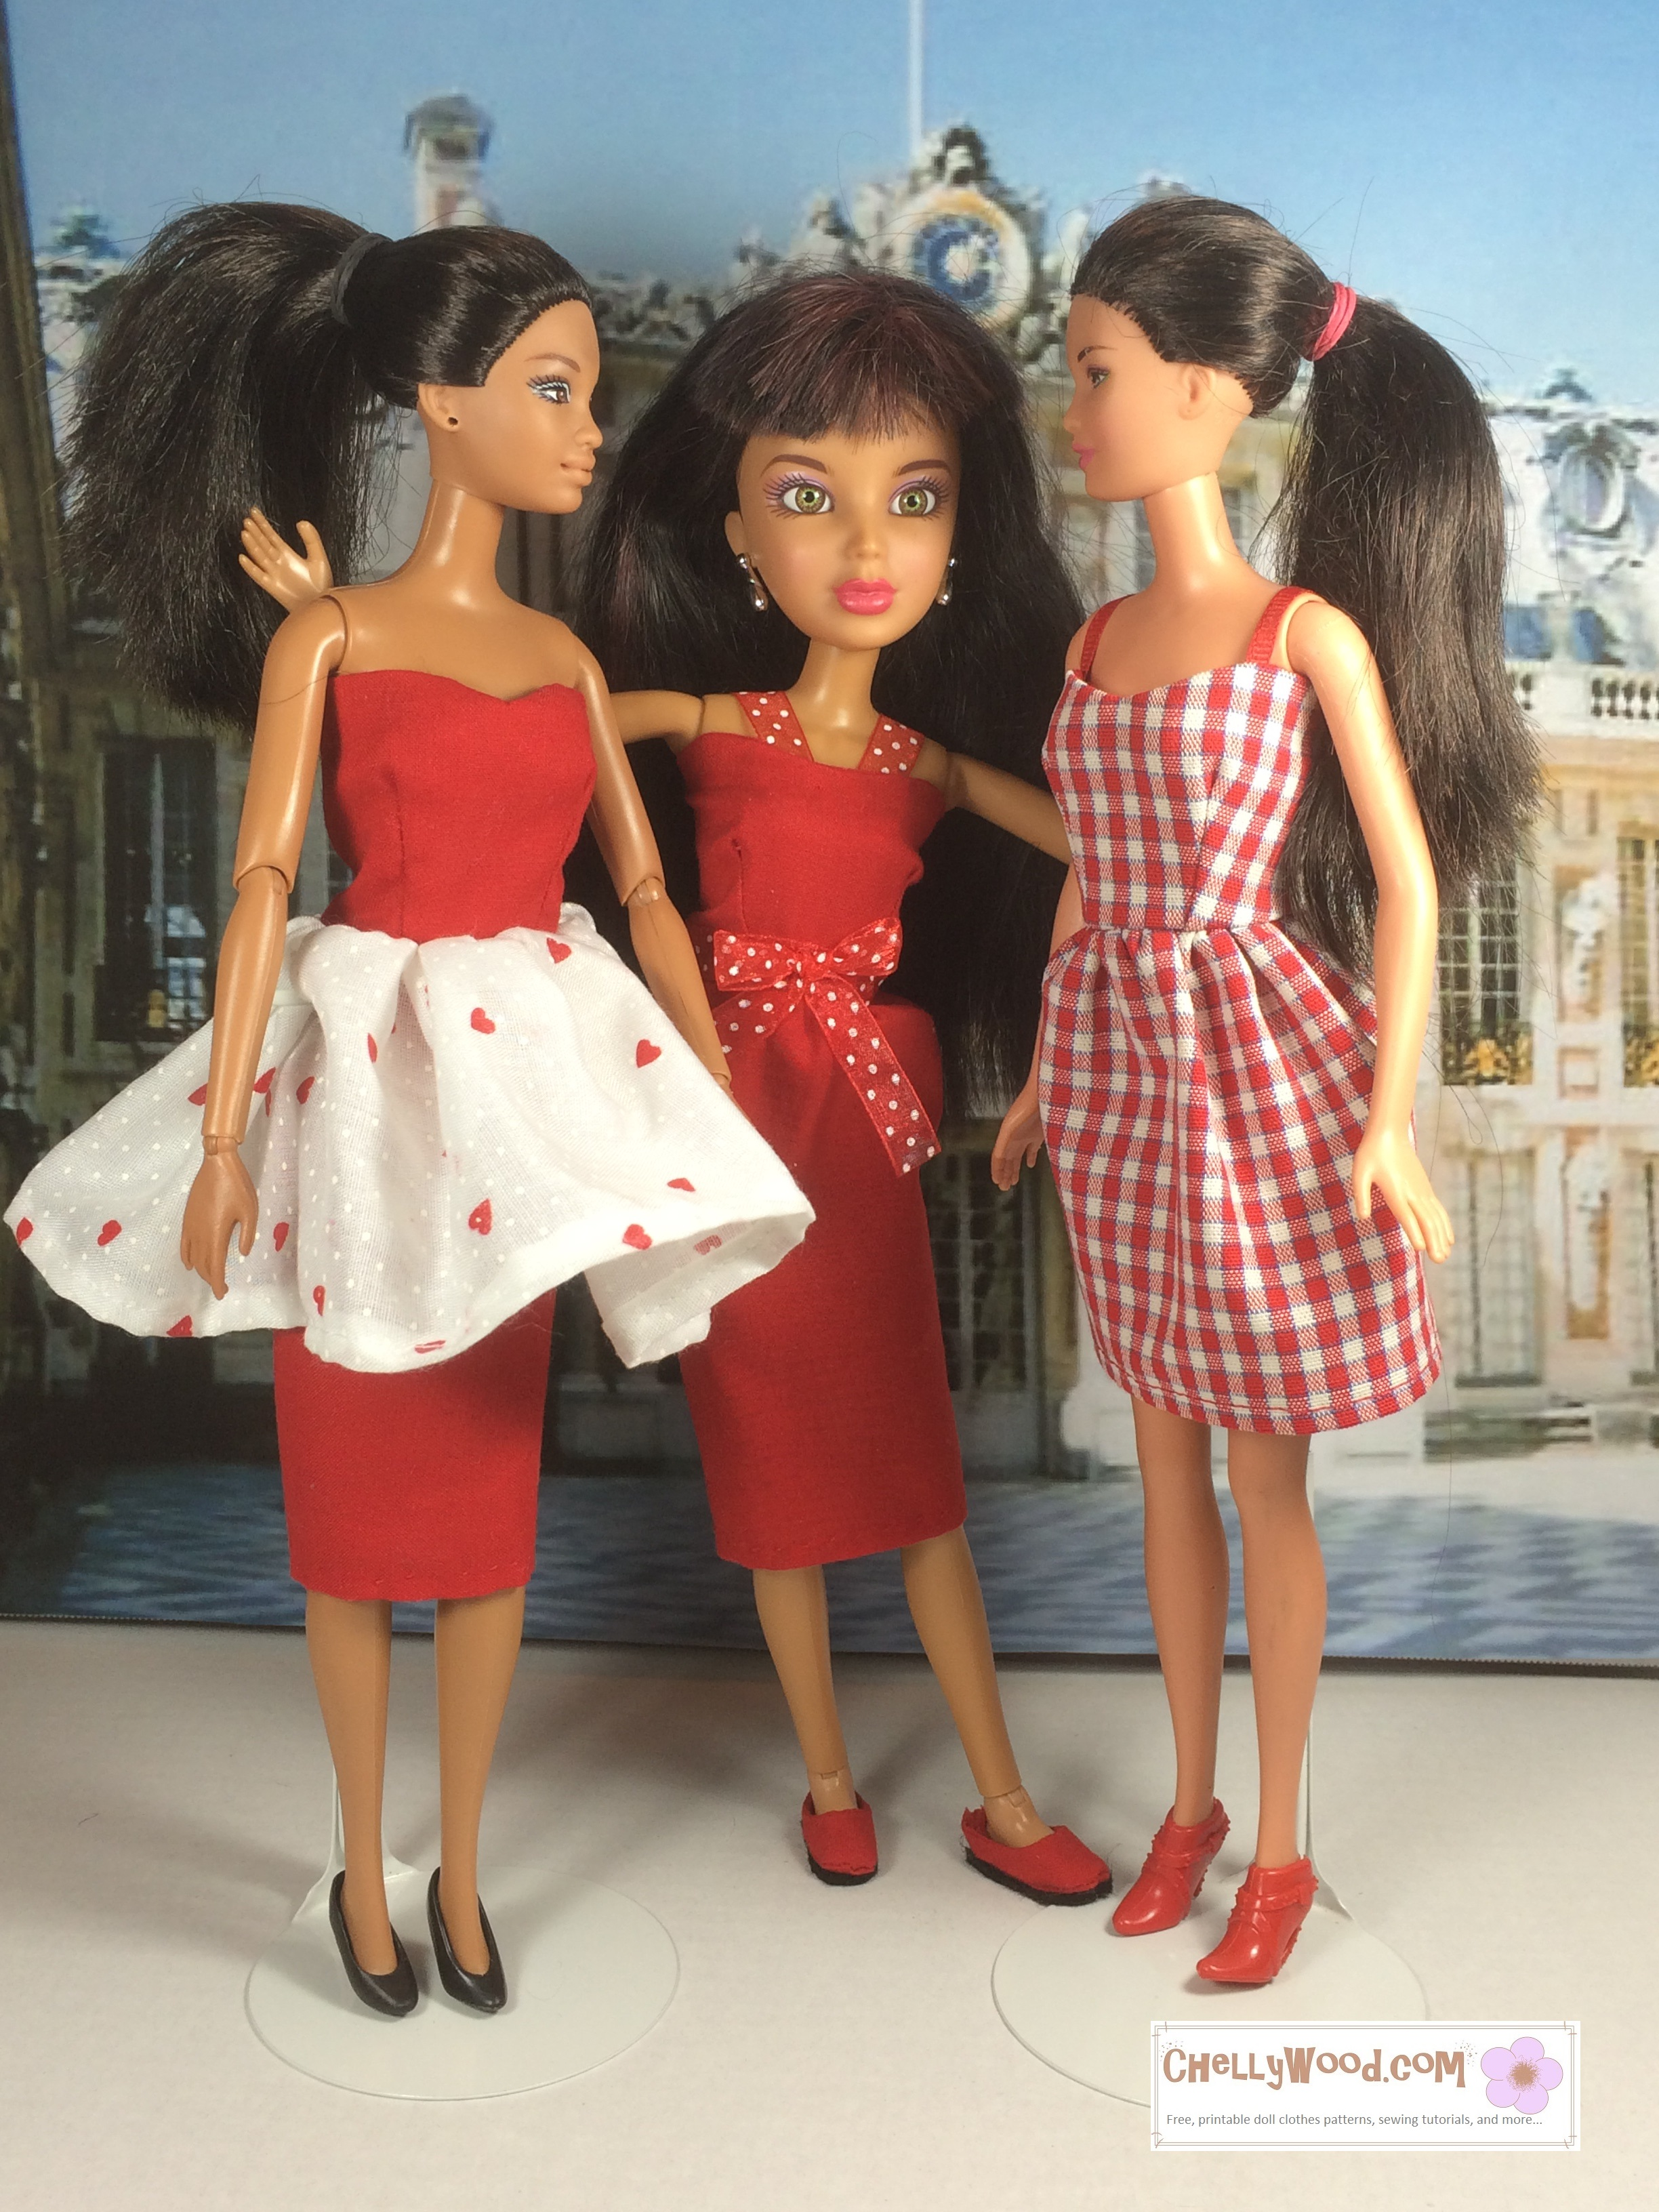 Free sewing patterns and diy tutorials for making holiday dresses free sewing patterns and diy tutorials for making holiday dresses for barbie and other fashion dolls jeuxipadfo Gallery